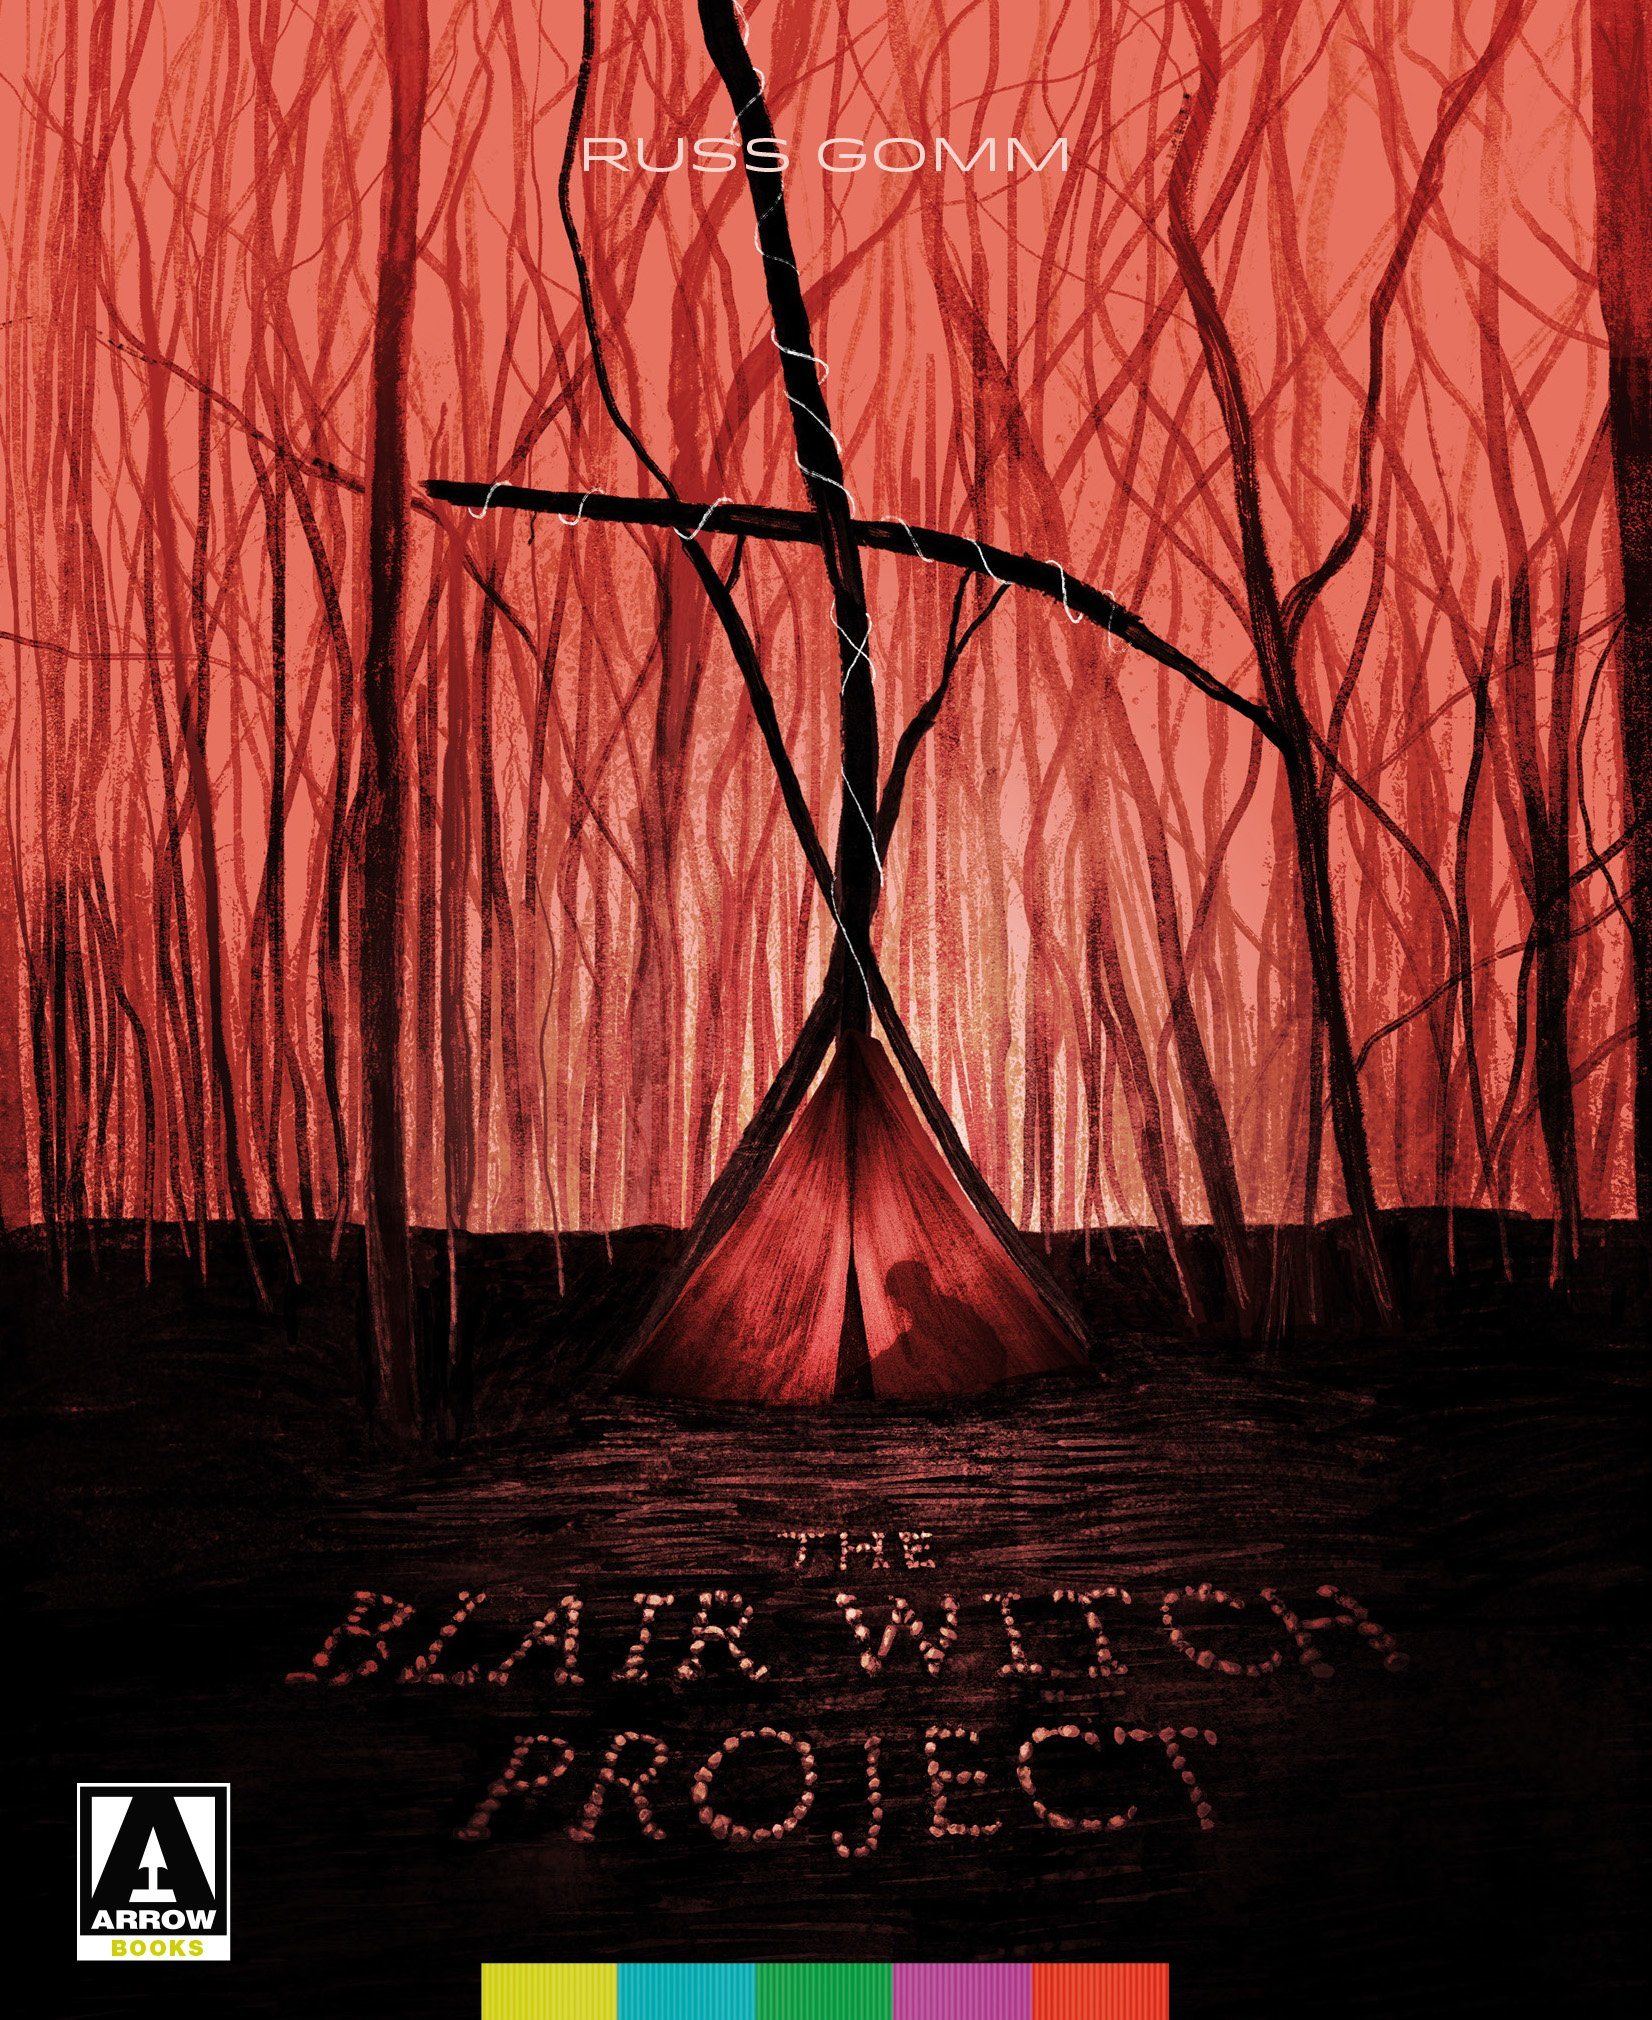 The Blair Witch Project Amazon De Gomm Russell Bucher